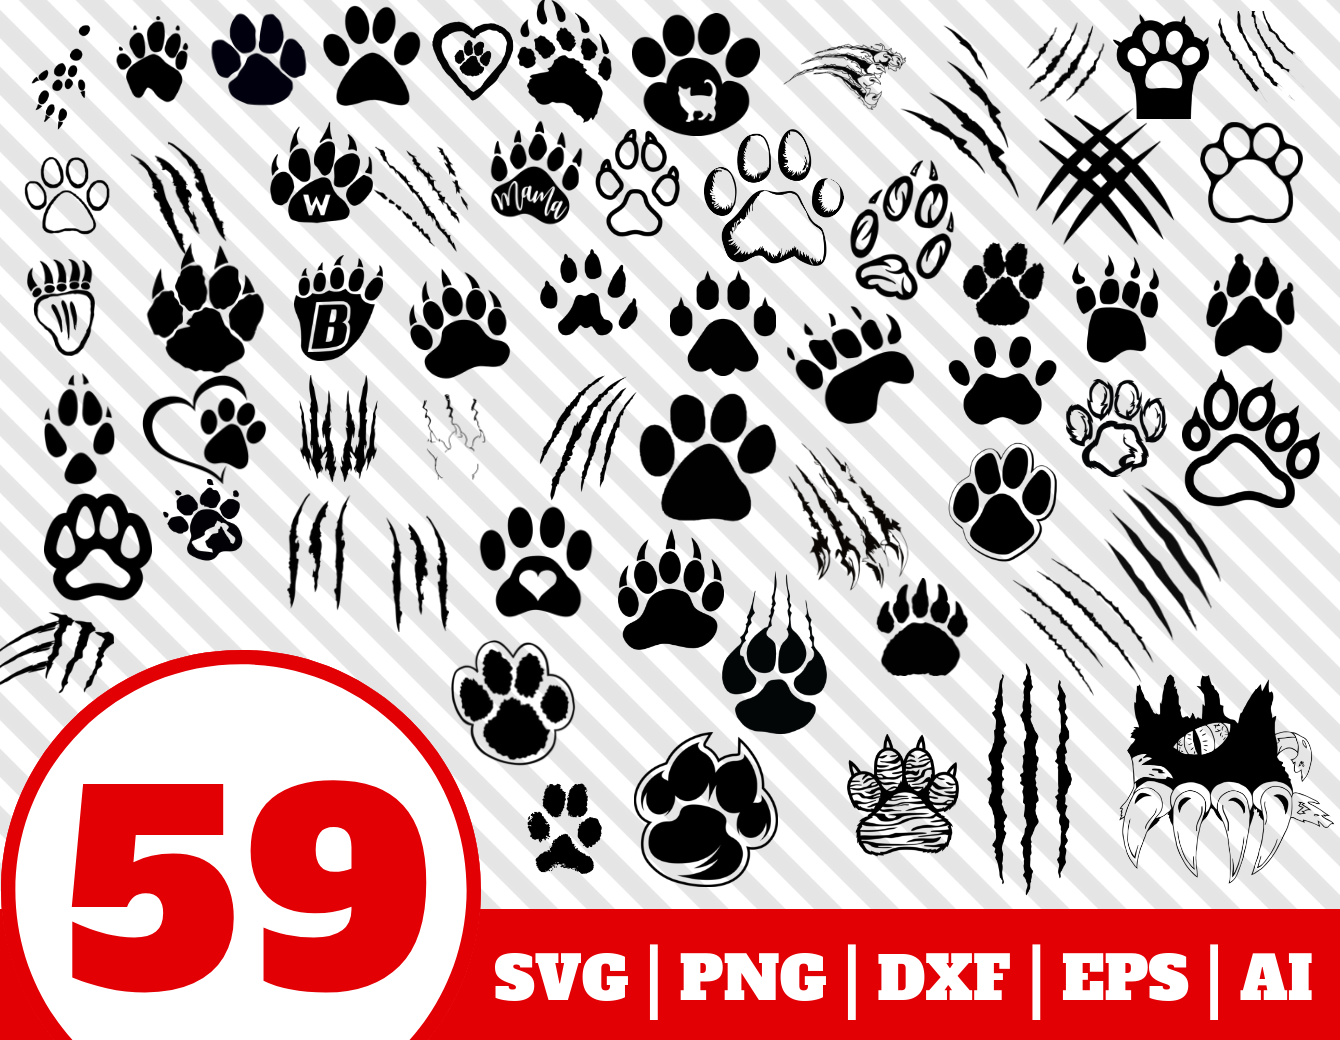 59 Paw Svg Bundle Paw Scratch Mark Clipart Paw Vector